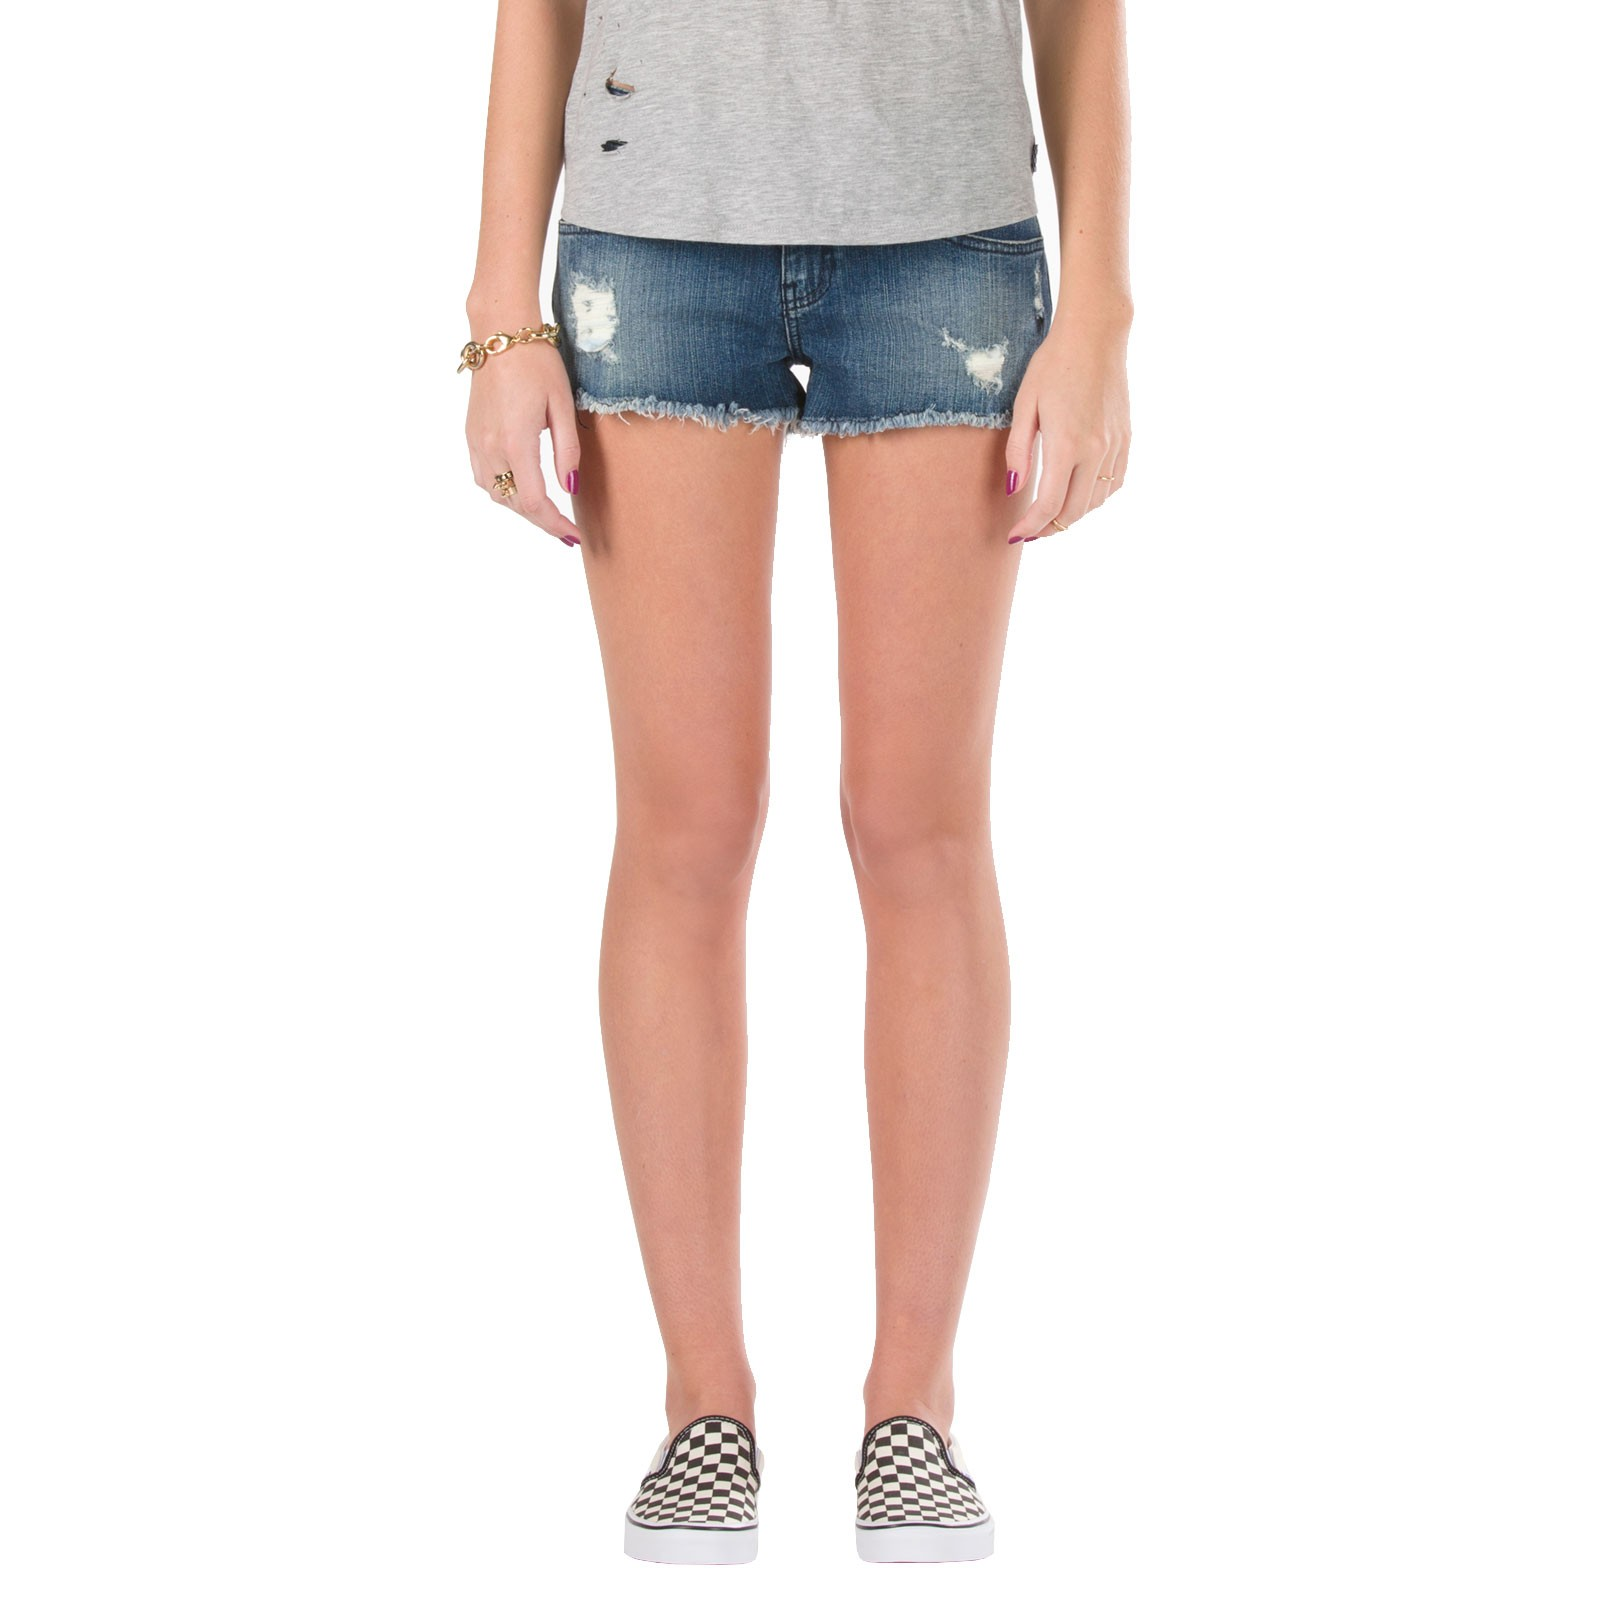 Vans Women's Destroyed Mini Denim Shorts - Indigo Destroyed